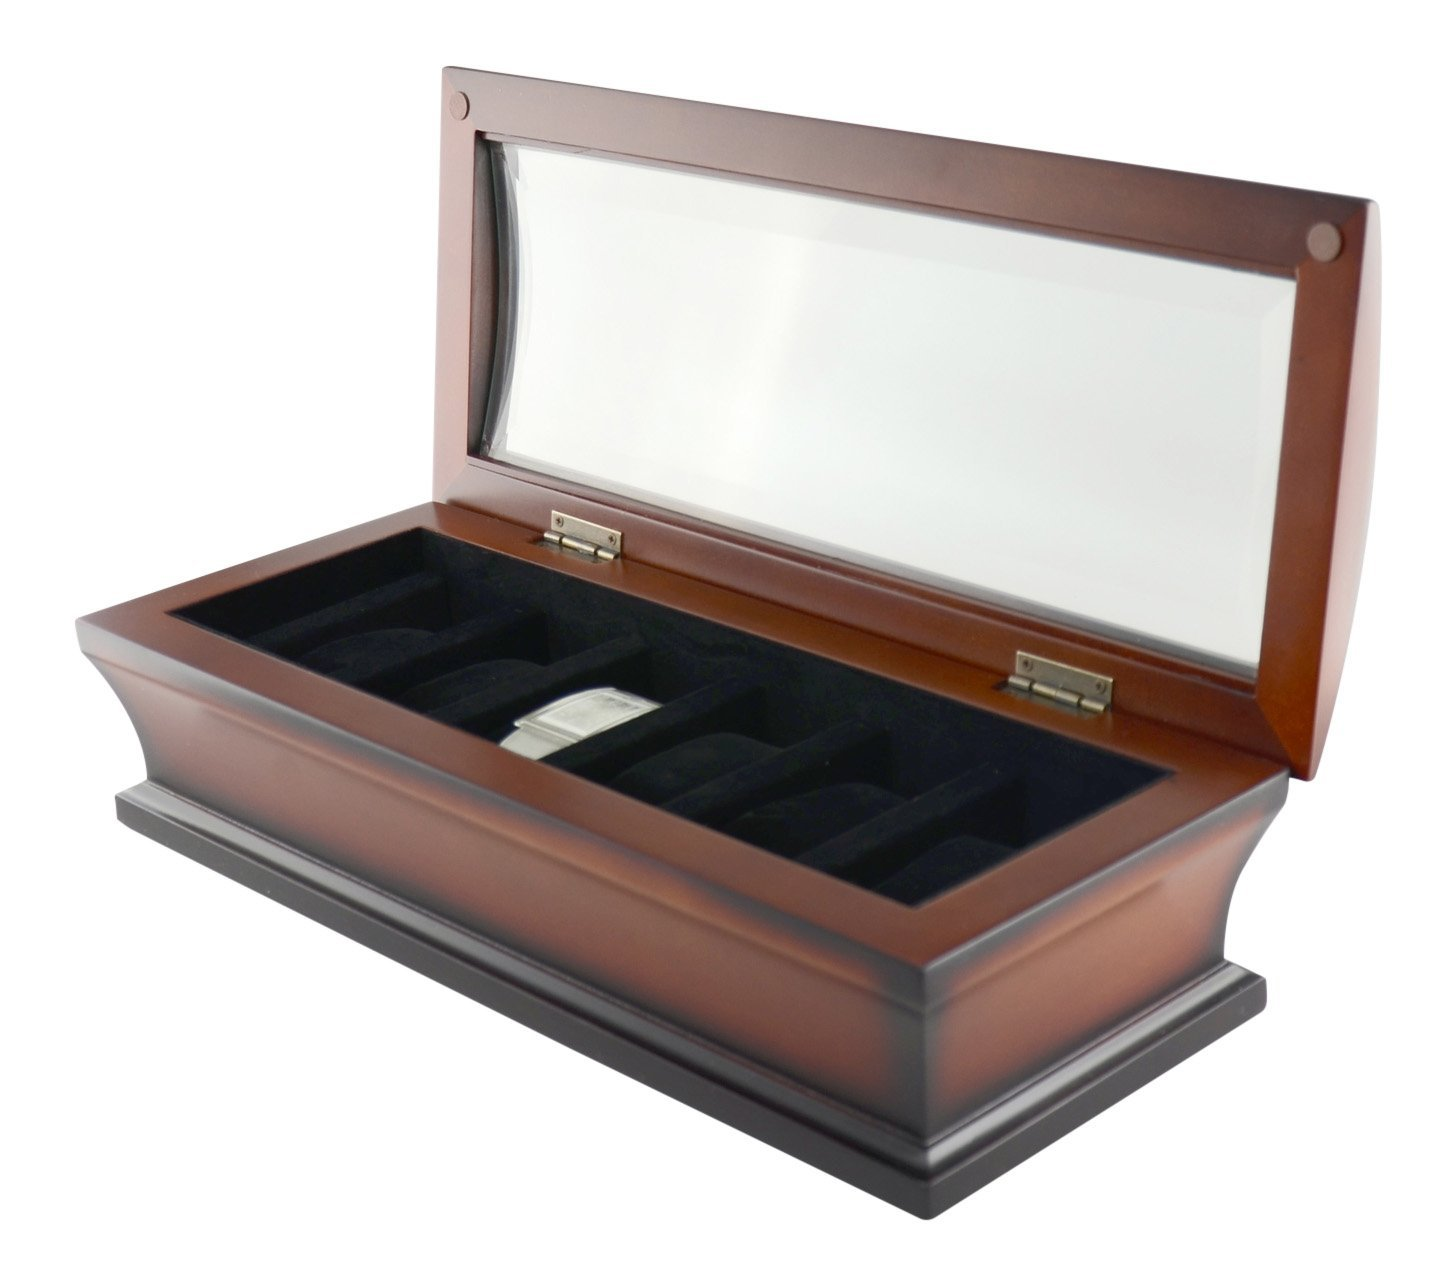 New Watch Display Case Mahogany Wood Finish - 6 Watches Brand Bombay - Glass Topped Case